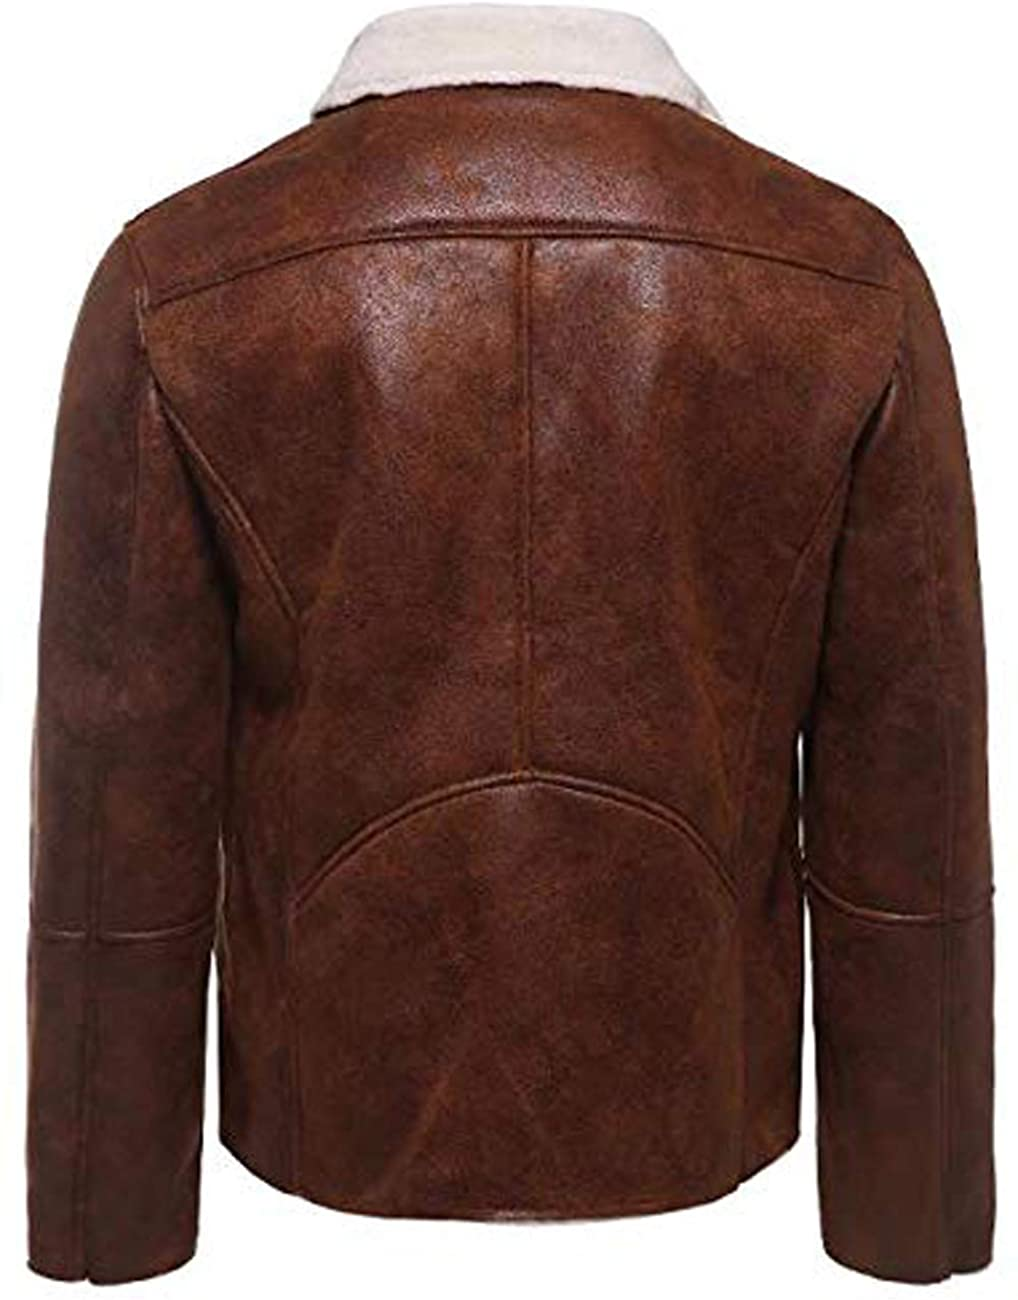 Men White Shearling FUR Genuine Sheepskin Leather Jacket With Stylish Zip In Brown